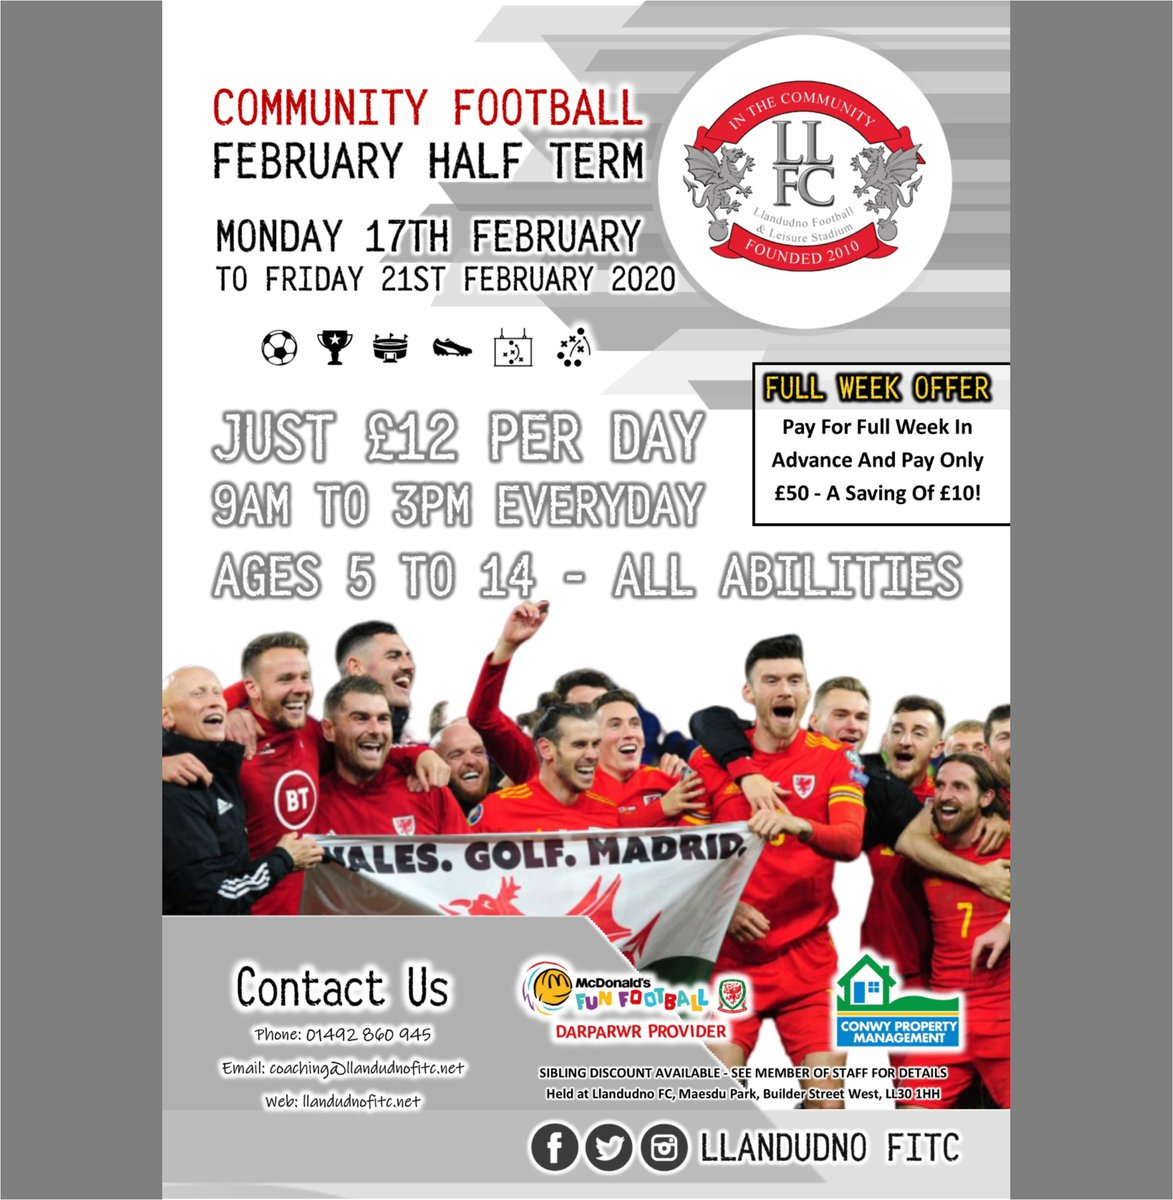 FEBRUARY HALF TERM  We are pleased to announce our February Half Term camp - FULL INFO ON OUR POSTER!  To book, send us a direct message, email coaching@llandudnofitc.net or call 01492 860945. #OneClubOneCommunity #NotForProfit #ForTheGamepic.twitter.com/0nBBwTWL8S